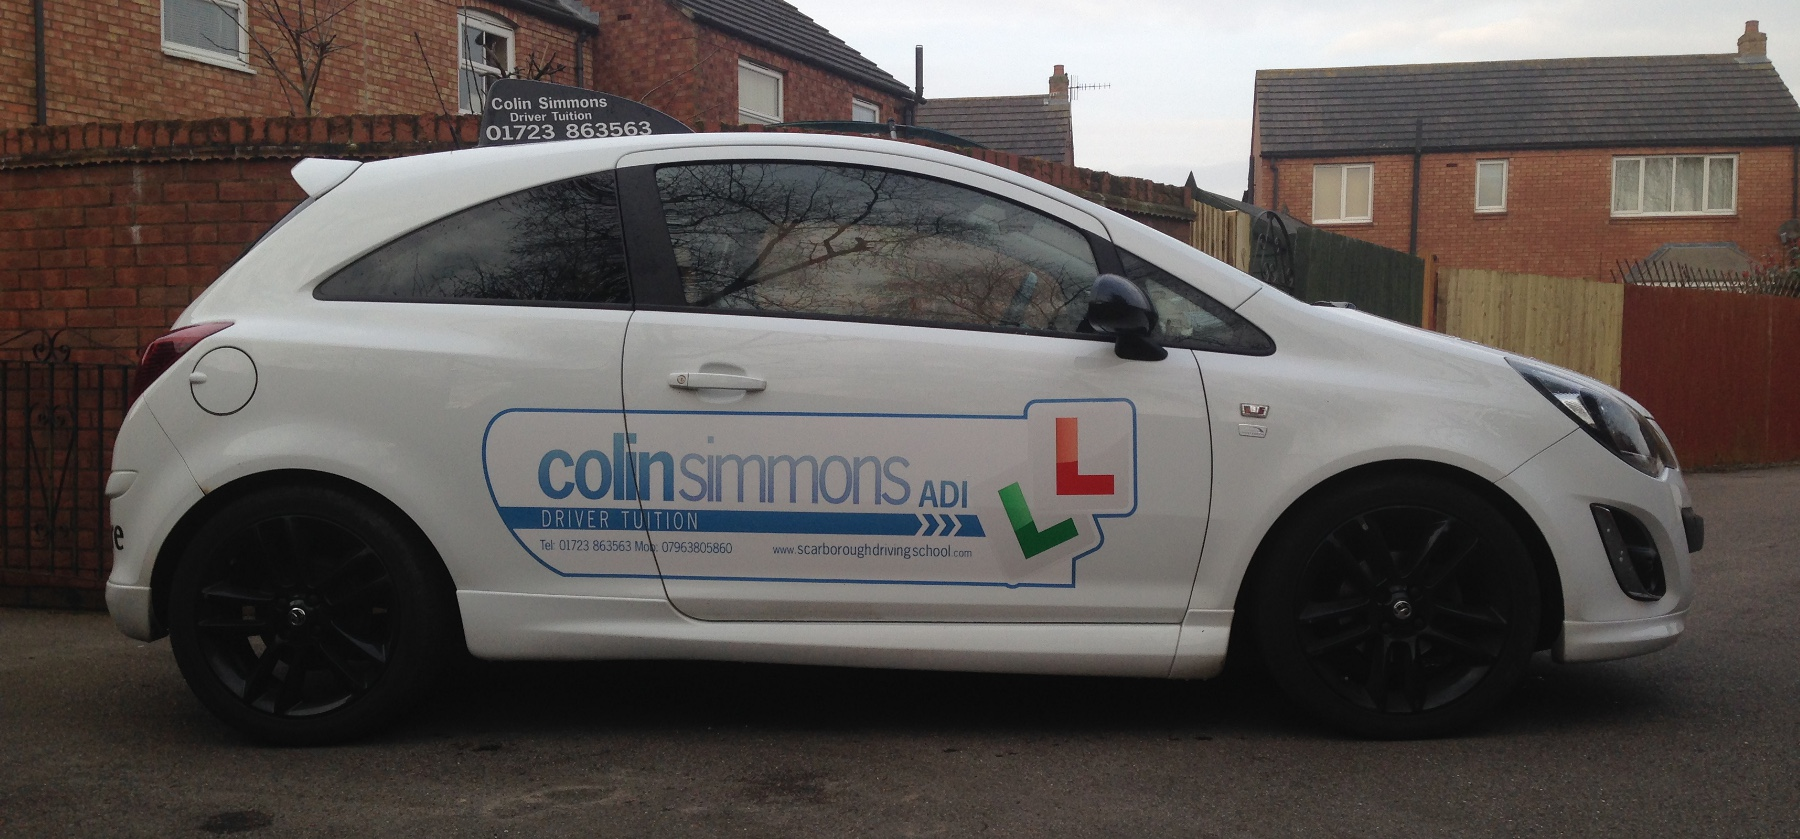 Colin Simmons Driver Tuition in Scarborough